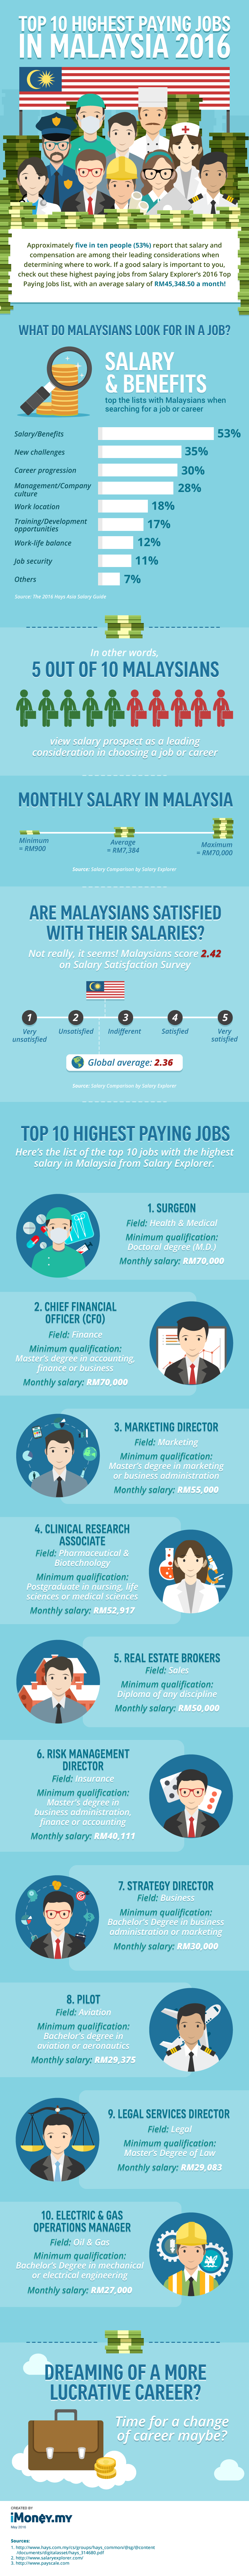 Top 10 highest paying jobs in Malaysia 2016